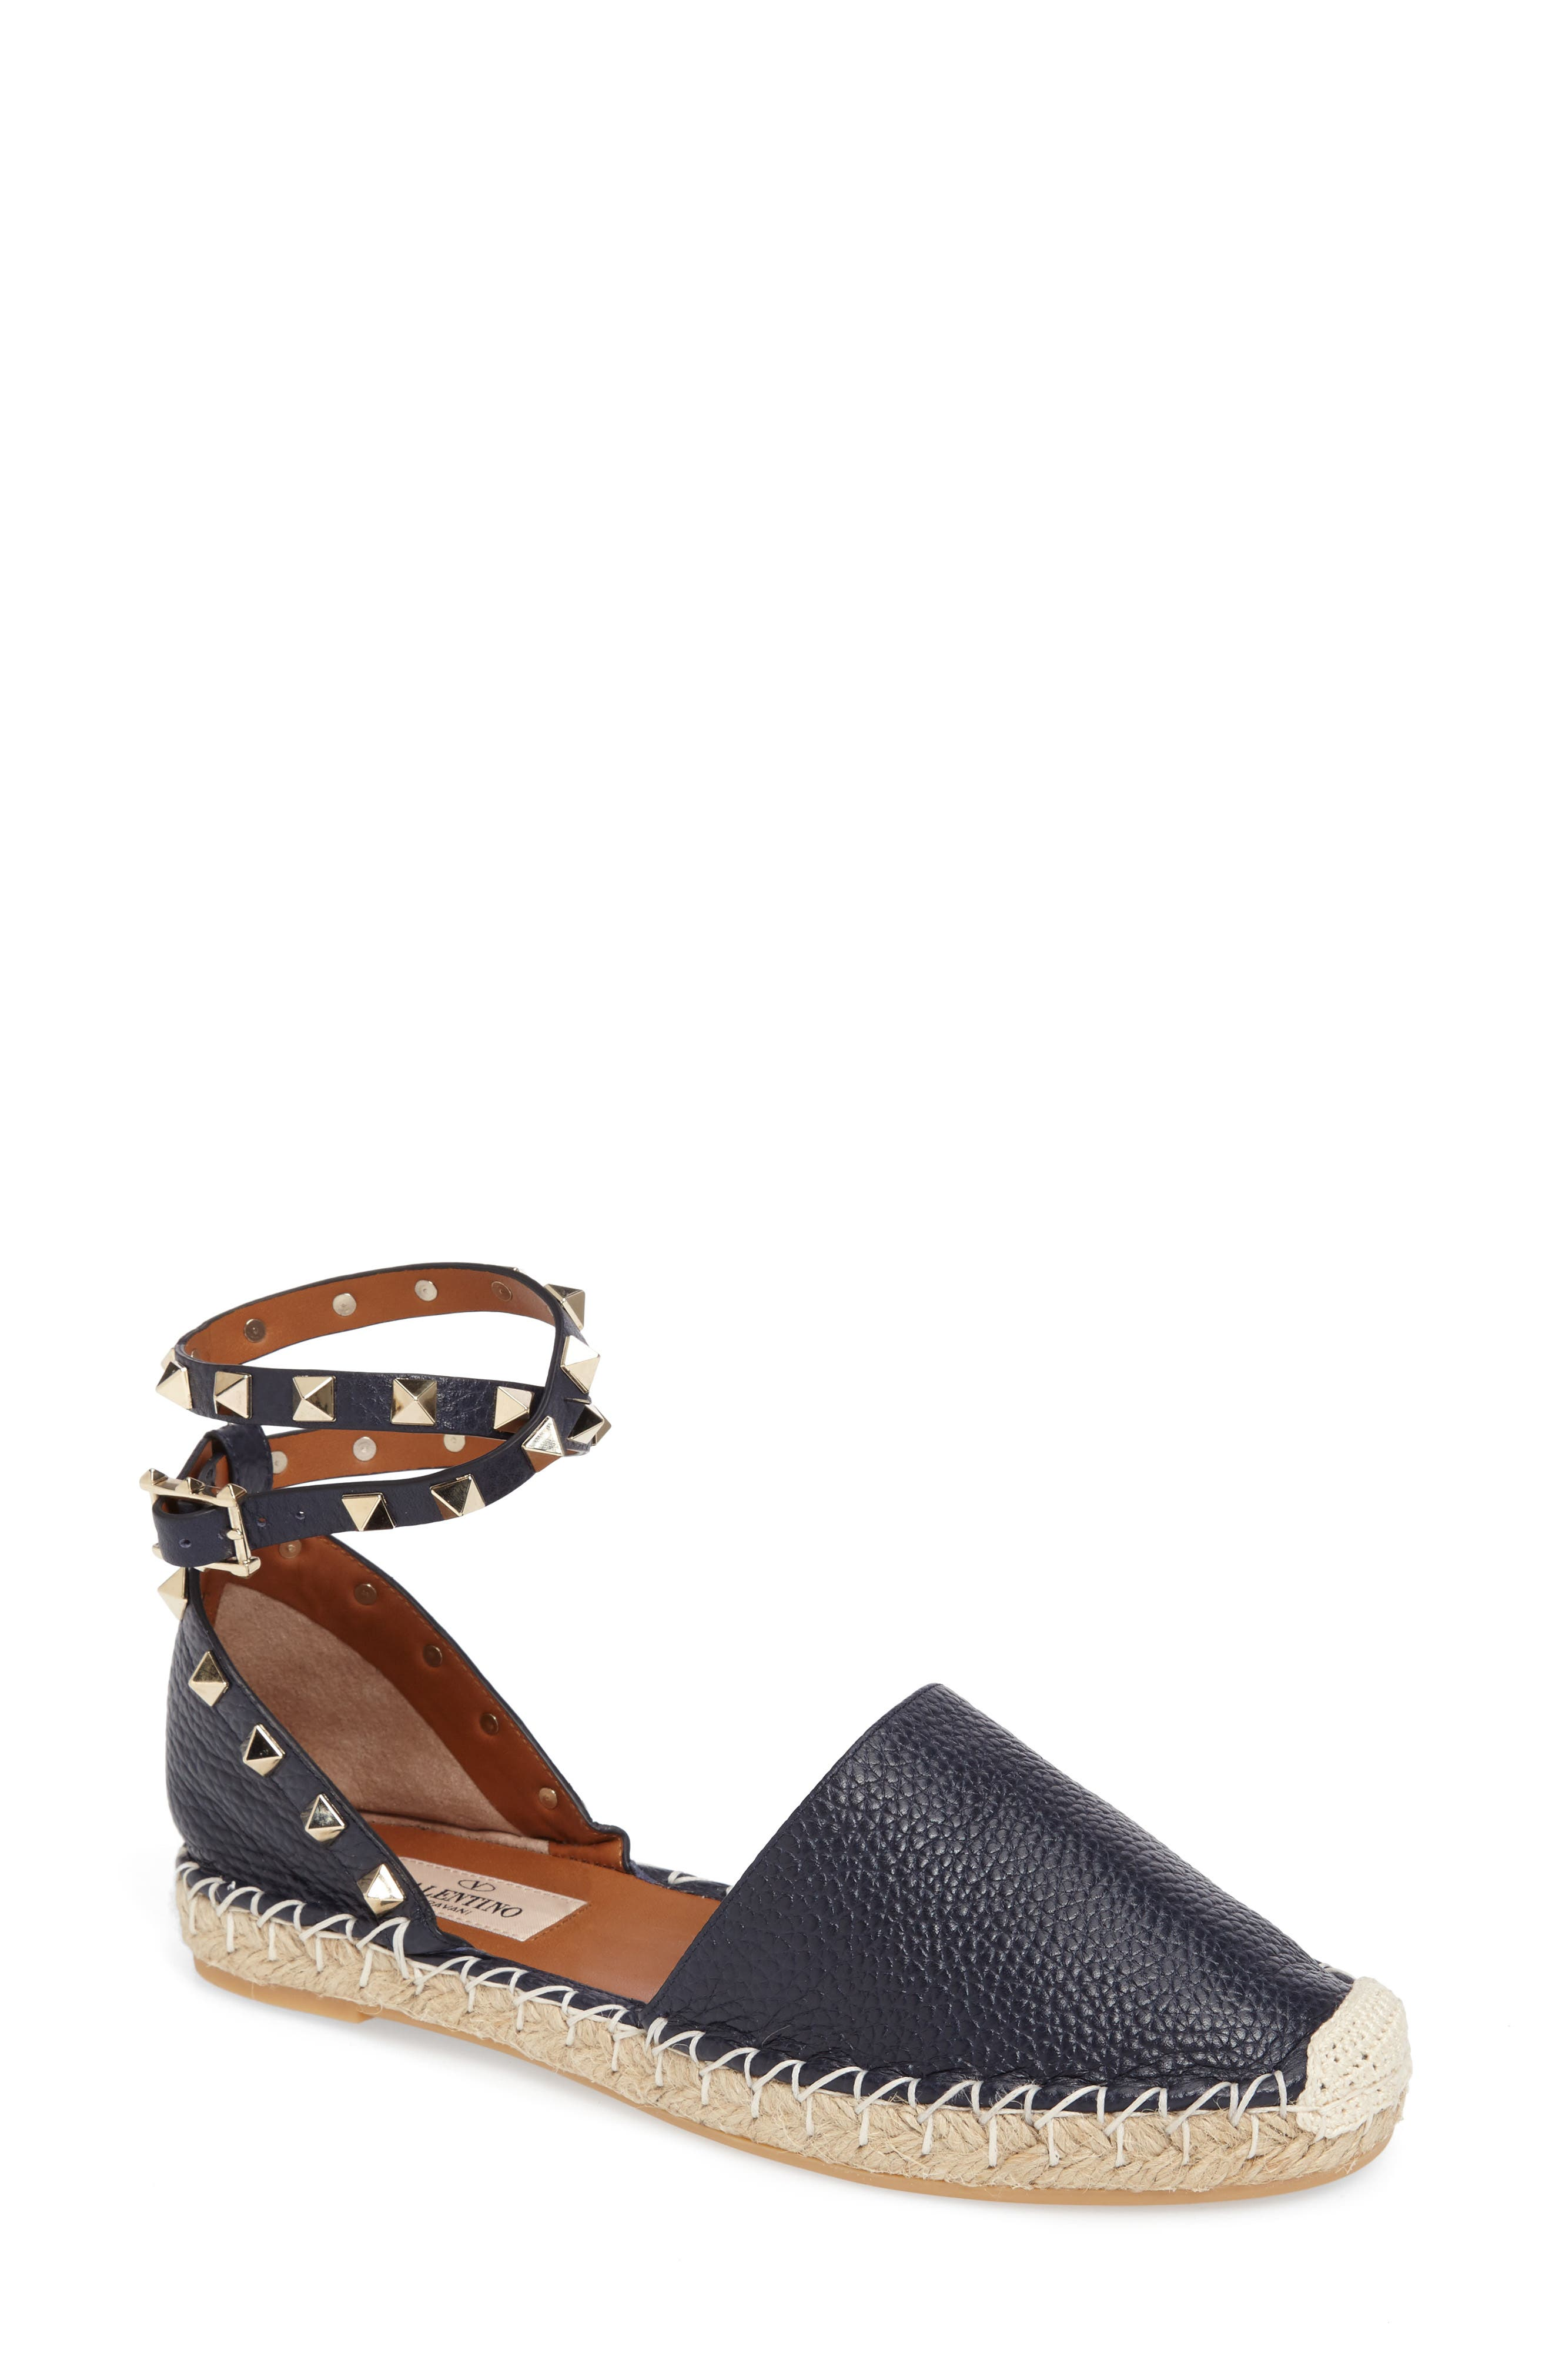 Alternate Image 1 Selected - Valentino Rockstud Espadrille Sandal (Women)